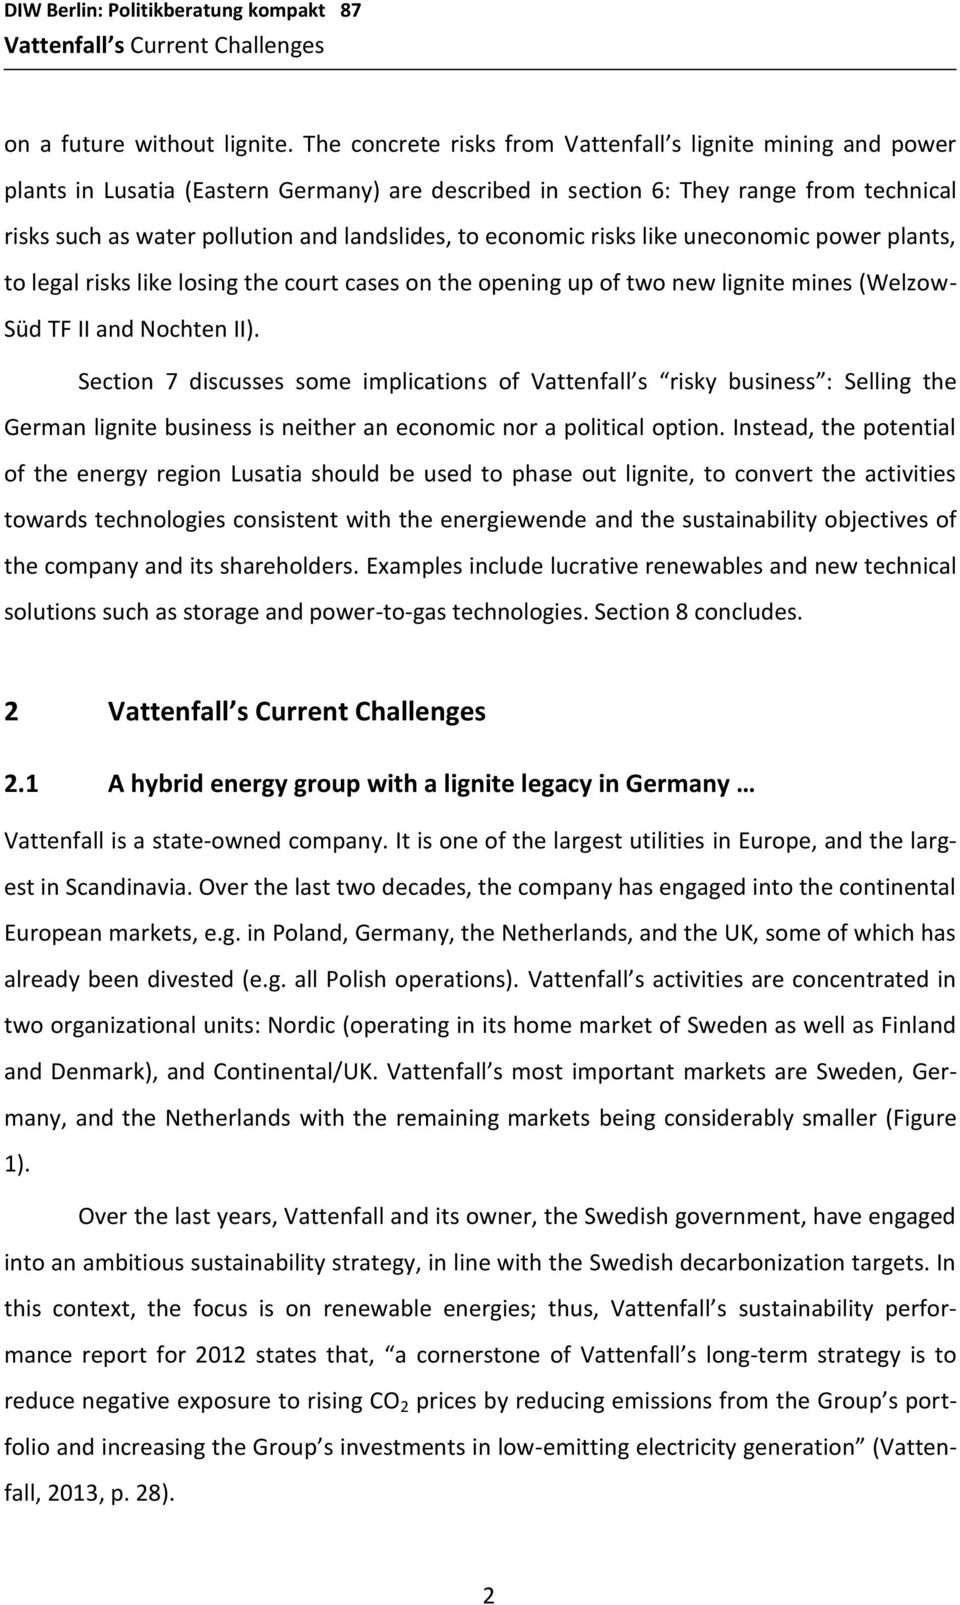 to economic risks like uneconomic power plants, to legal risks like losing the court cases on the opening up of two new lignite mines (Welzow- Süd TF II and Nochten II).